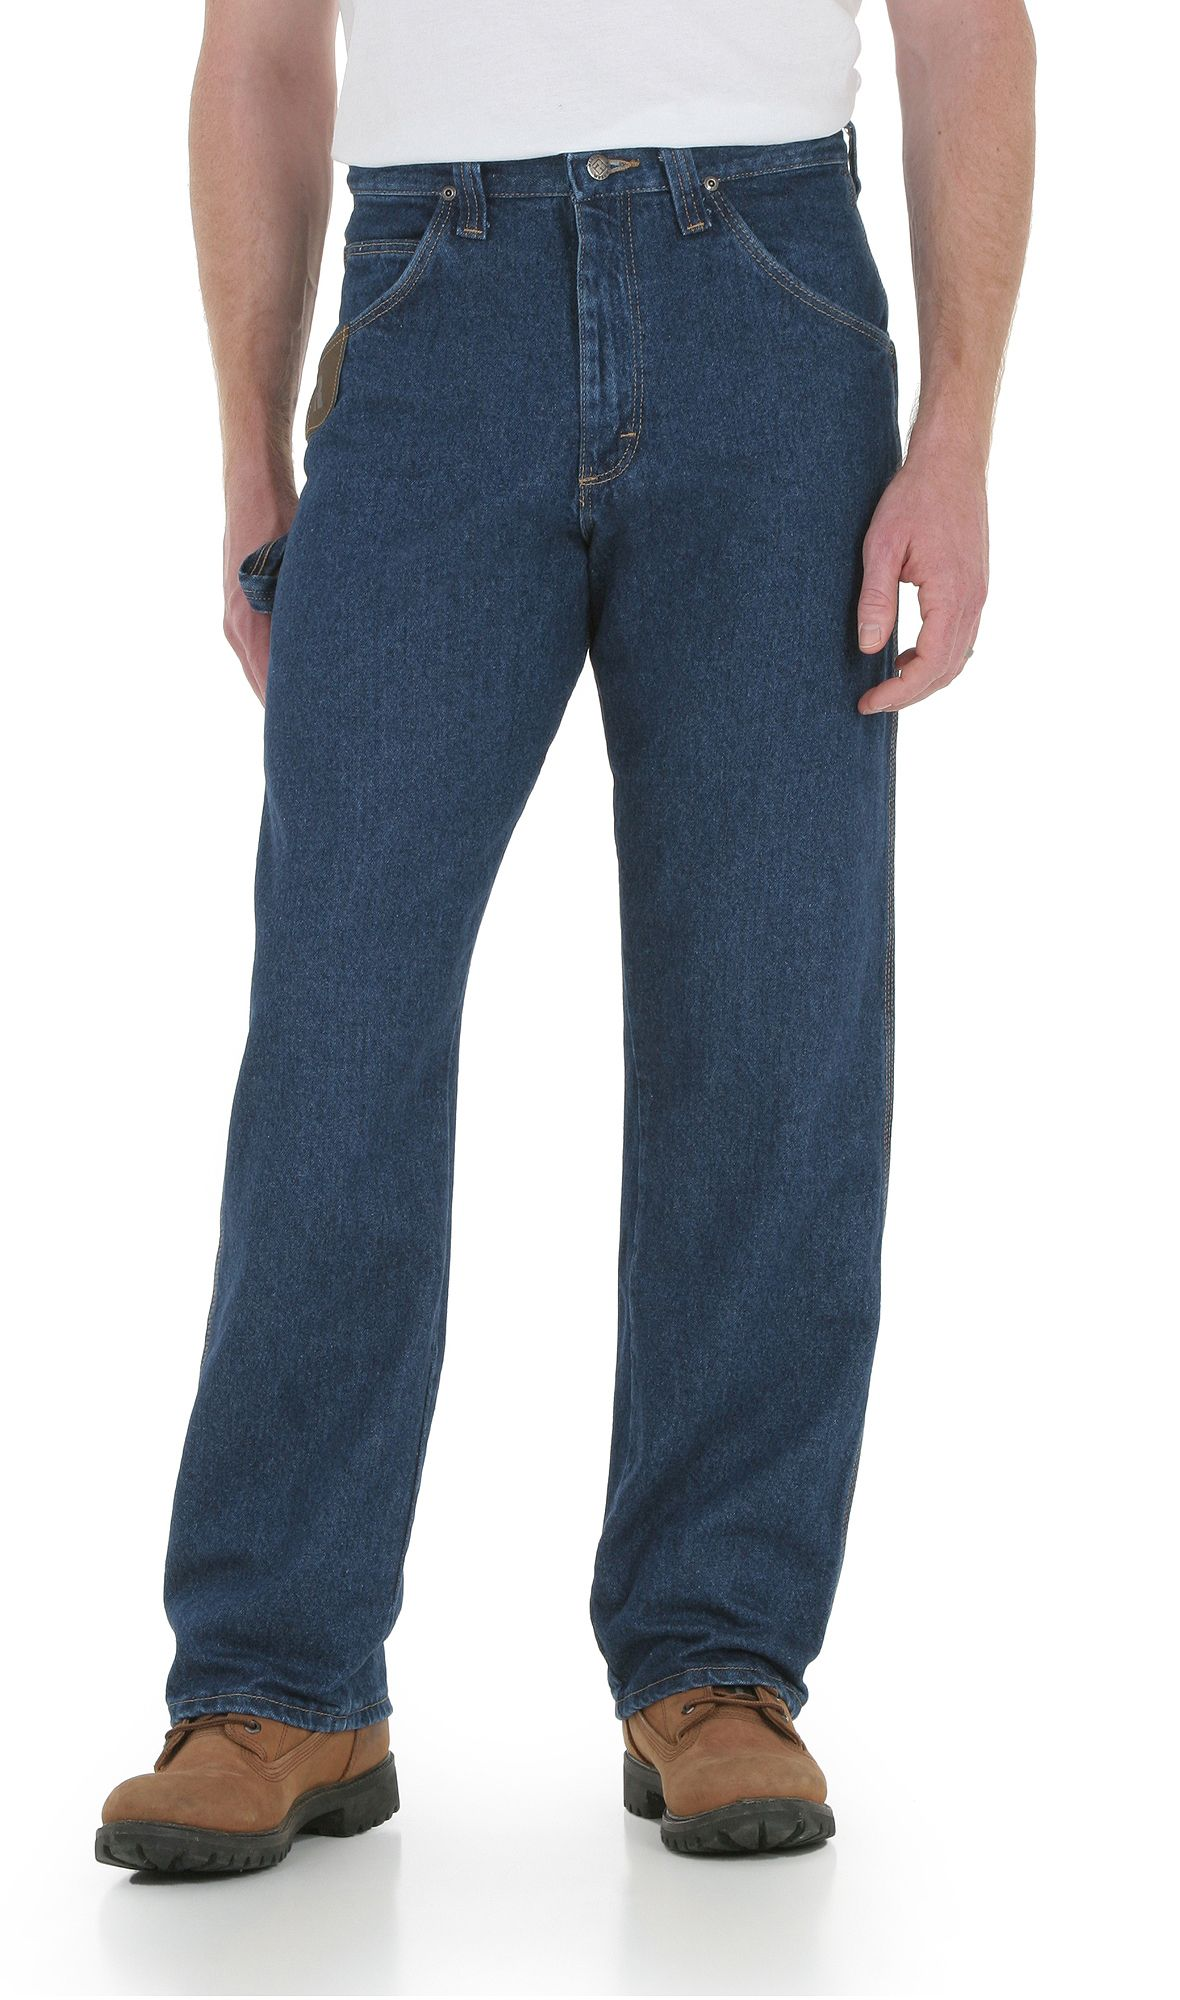 Riggs Workwear Mens Work Horse Relaxed Fit Jeans